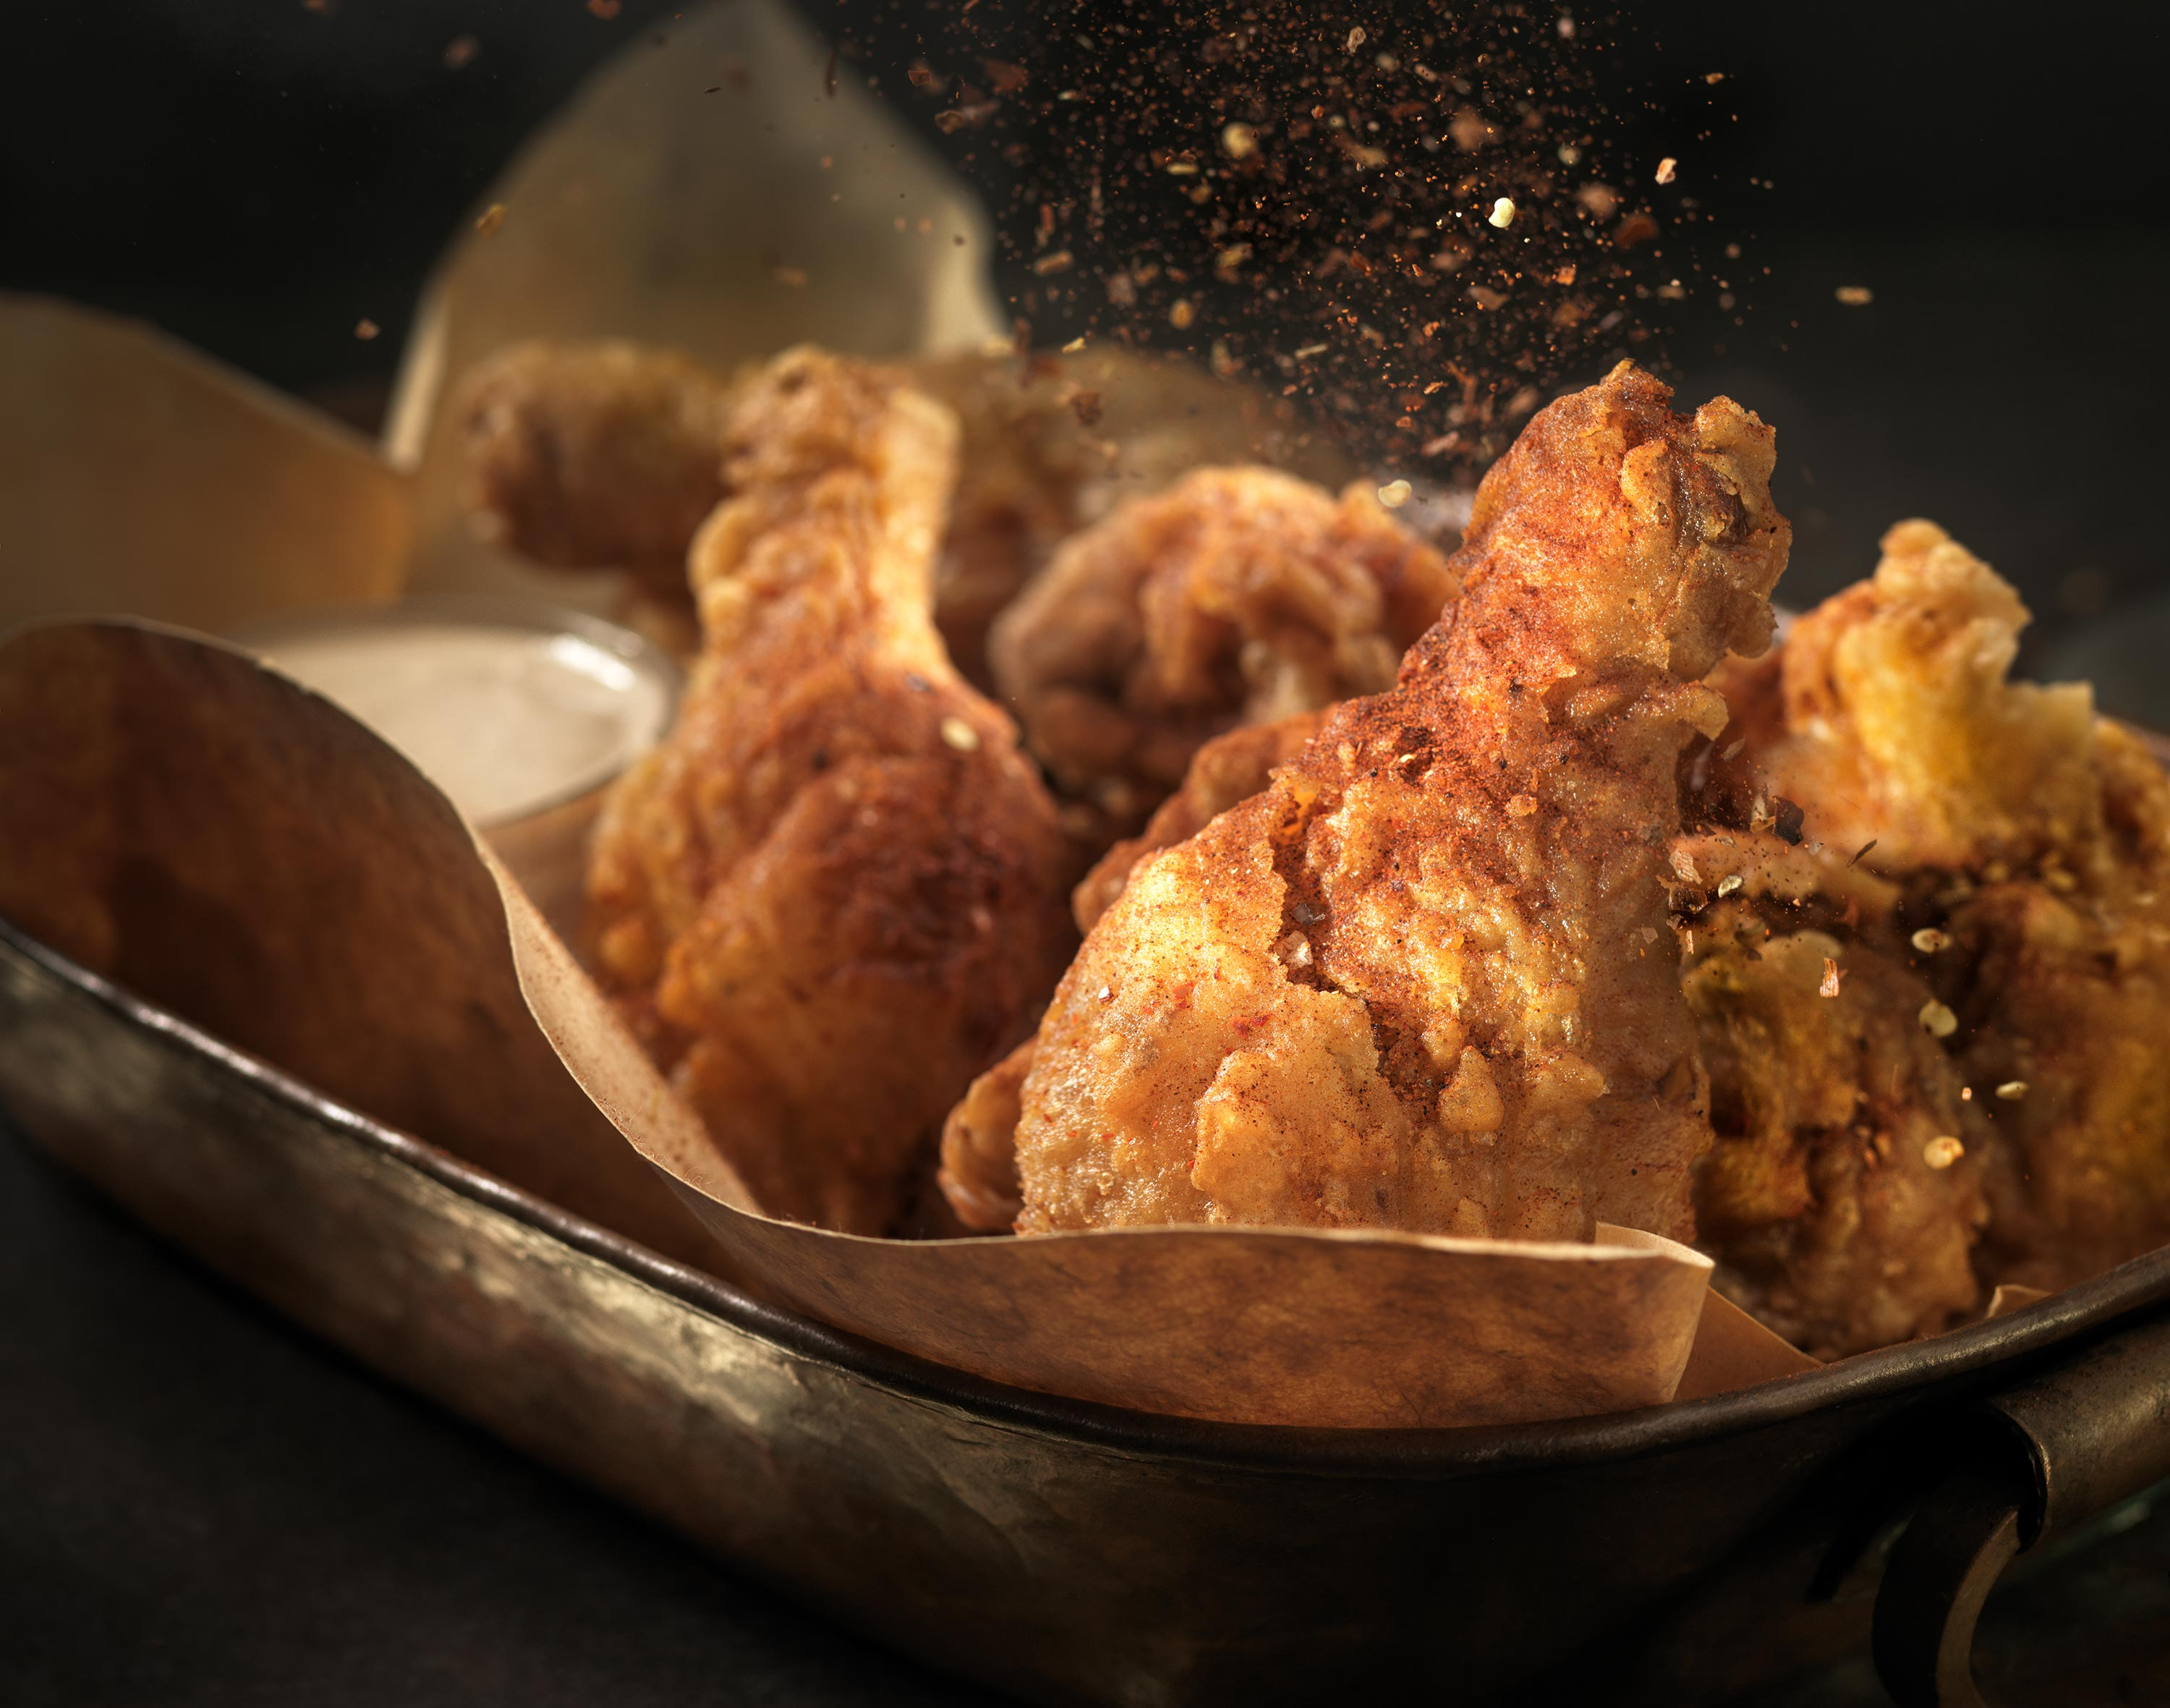 Fried Chicken | Steve Hansen Images Seattle Food Photographer